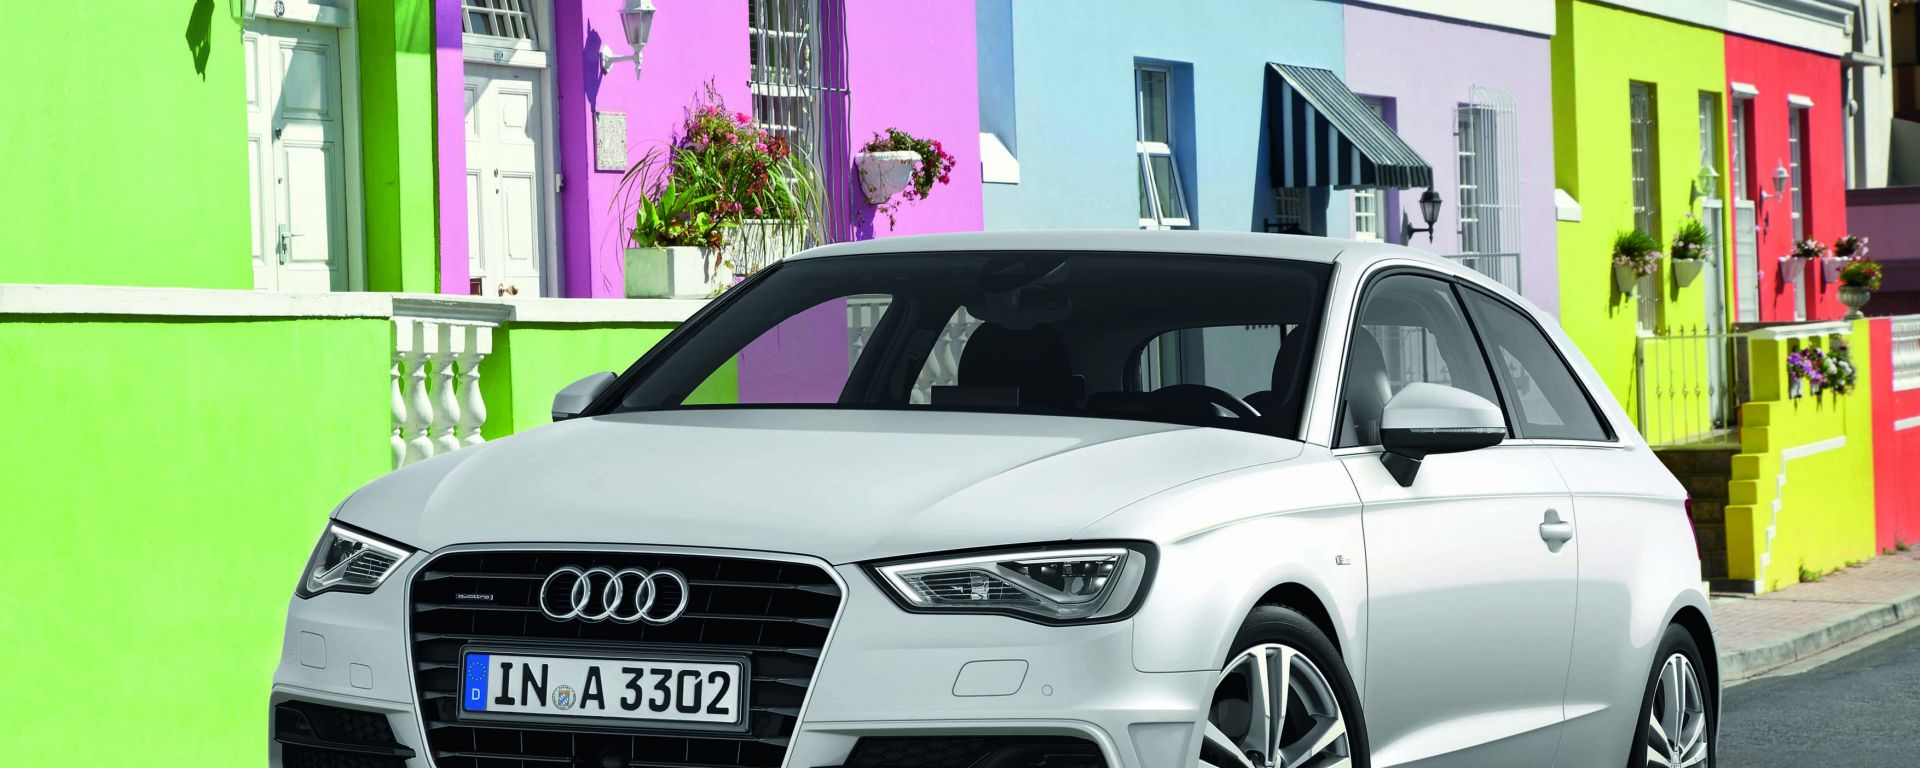 Audi A3 2012: ora la si vede anche in video